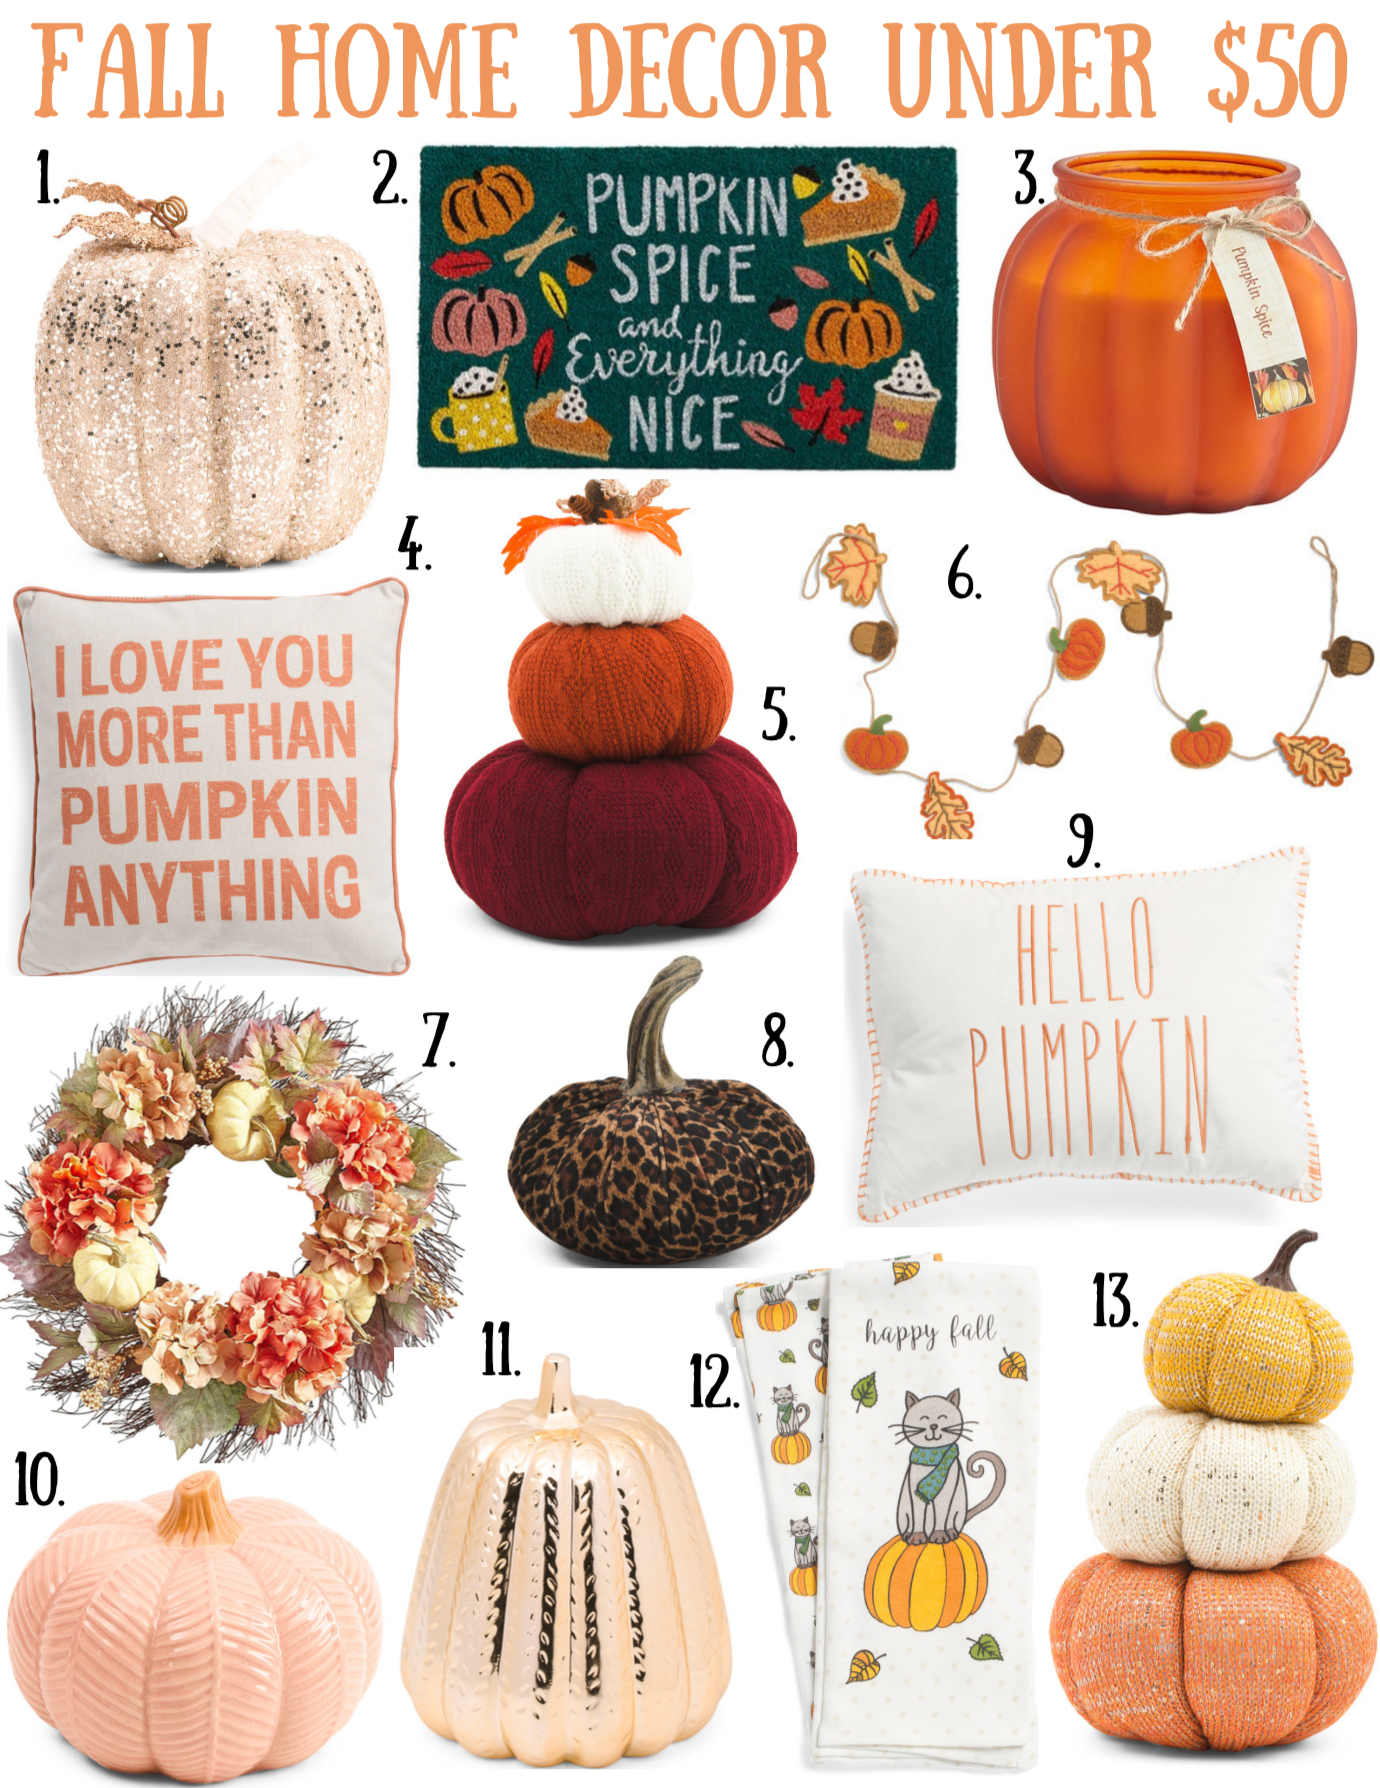 Fall Home Decor Under $50